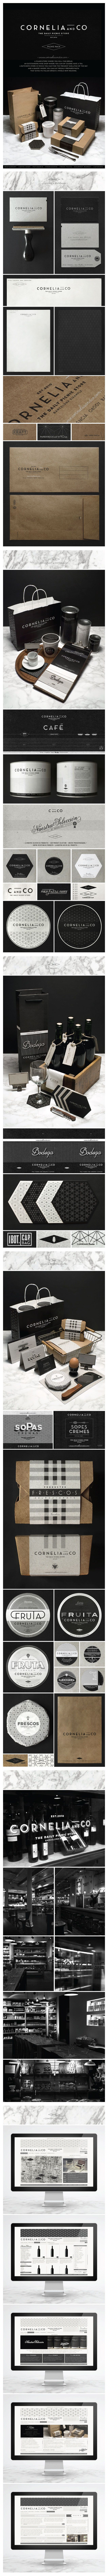 Cornelia and Co by Oriol Gil| #stationary #corporate #design #corporatedesign #logo #identity #branding #marketing < found on www.luxlife.in pinned by www.BlickeDeeler.de